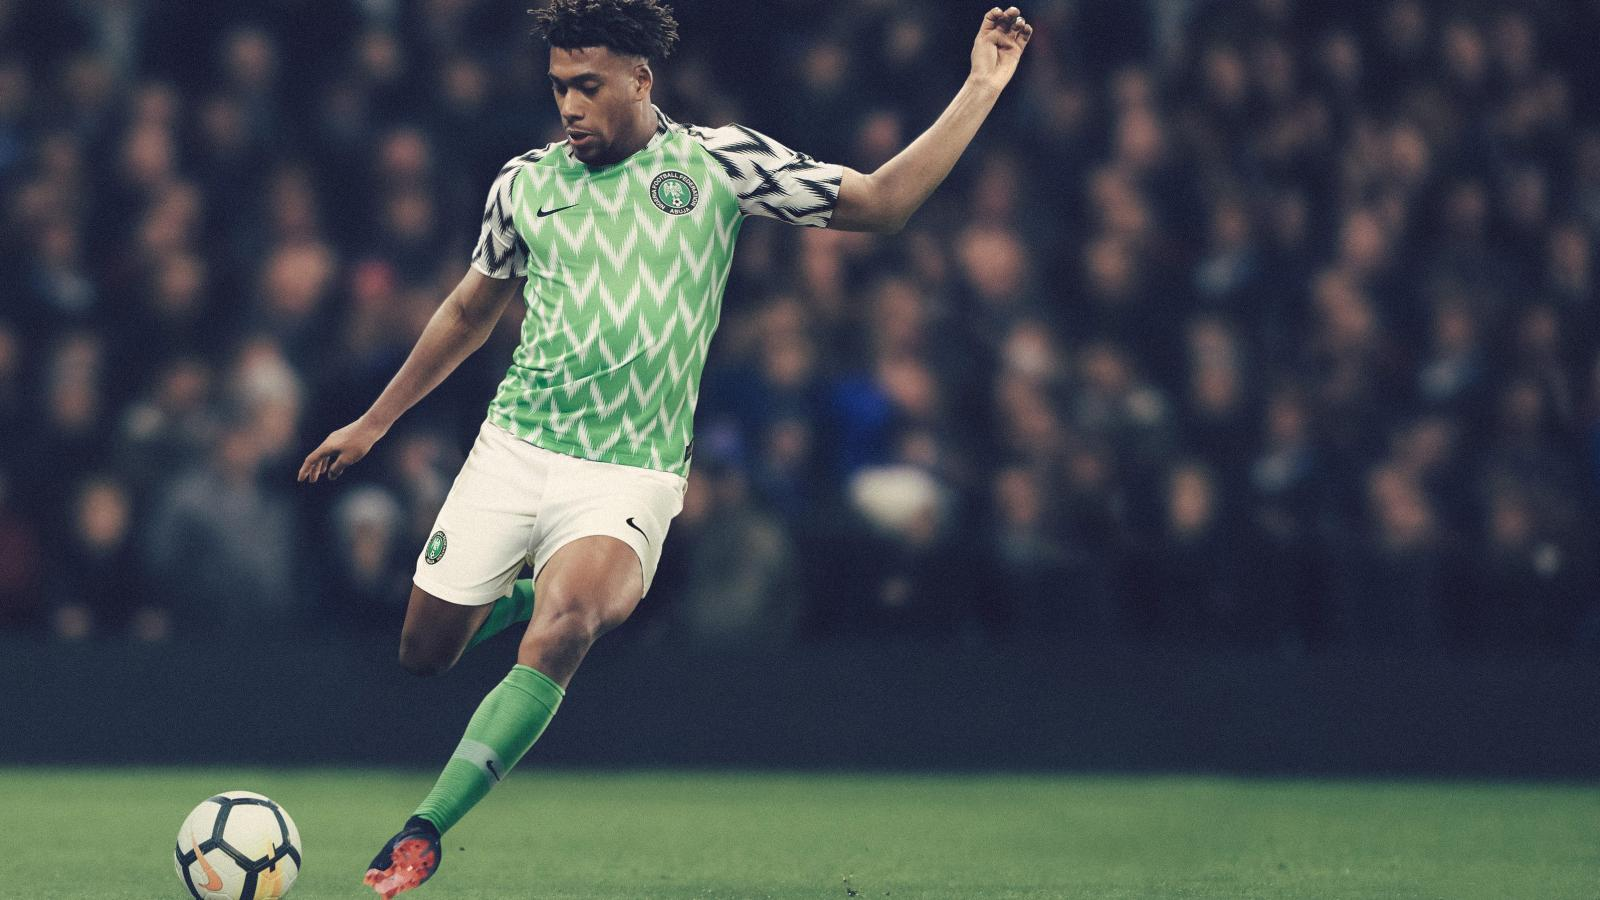 baa1ee3b3 Nigeria Nike World Cup soccer jersey pre-order sales top three million —  Quartz Africa